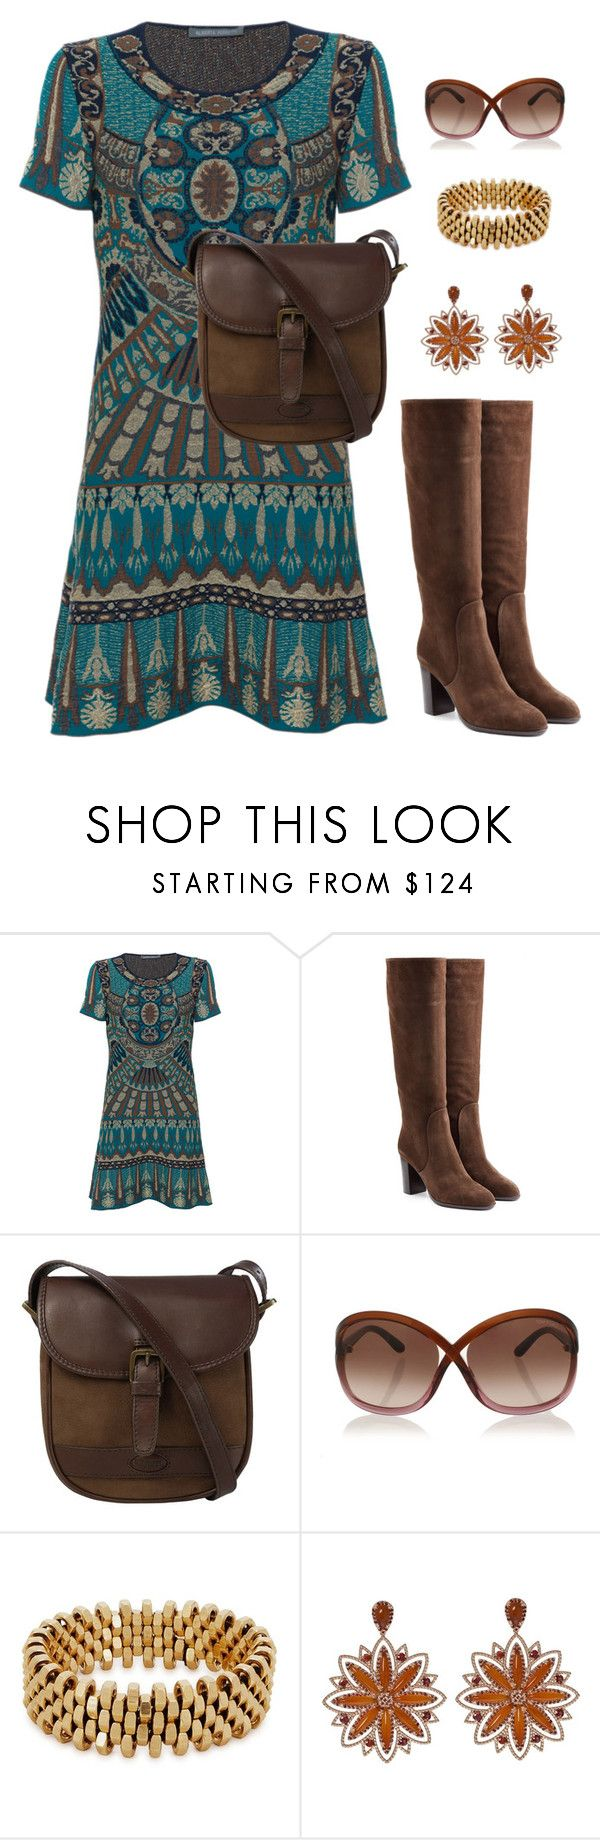 """""""Brown bag"""" by holgal ❤ liked on Polyvore featuring Alberta Ferretti, Sergio Rossi, DUBARRY, Tom Ford, Alice Menter and Carla Amorim"""